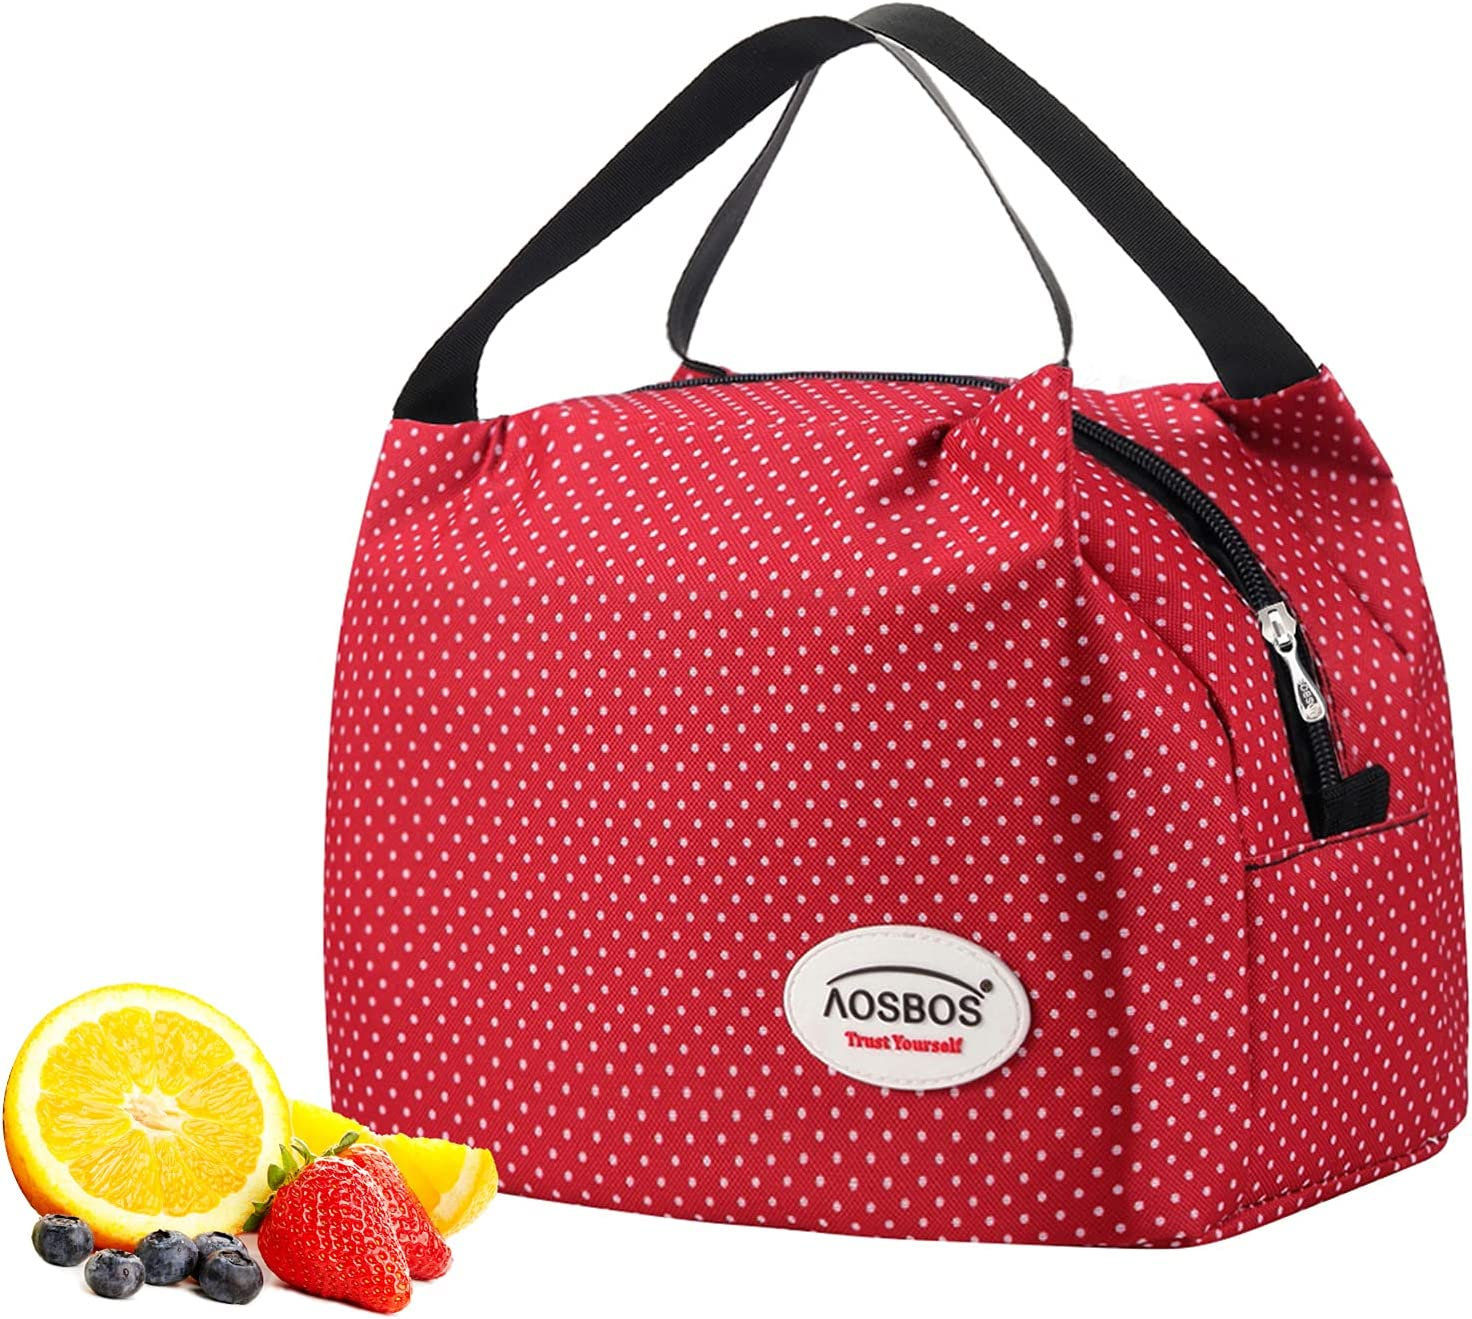 Kids Insulated Lunch Tote Bag Cooler Box Polyster Lunchbox Baby Bag Handbag Case